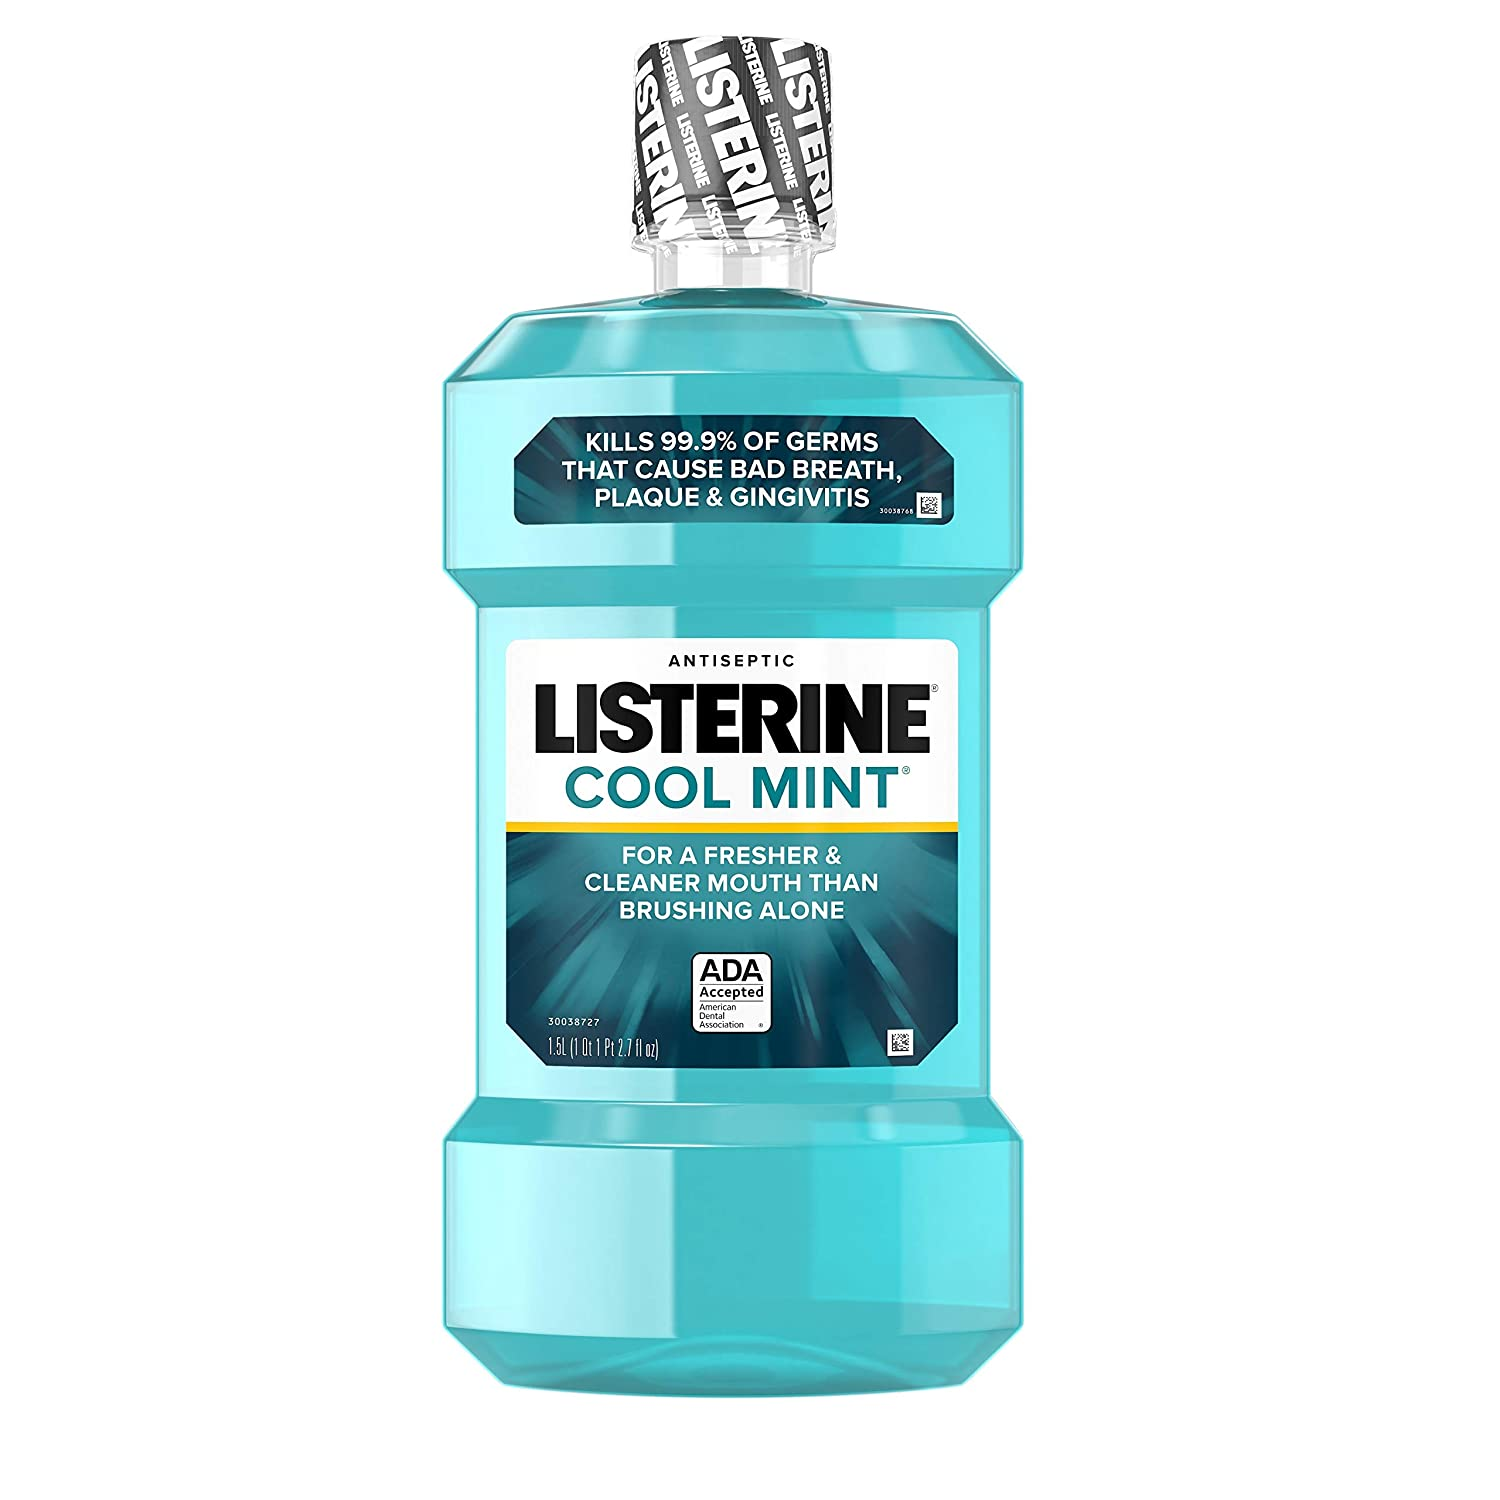 Listerine Cool Mint Antiseptic Mouthwash for Bad Breath, Plaque and Gingivitis, 1.5 l